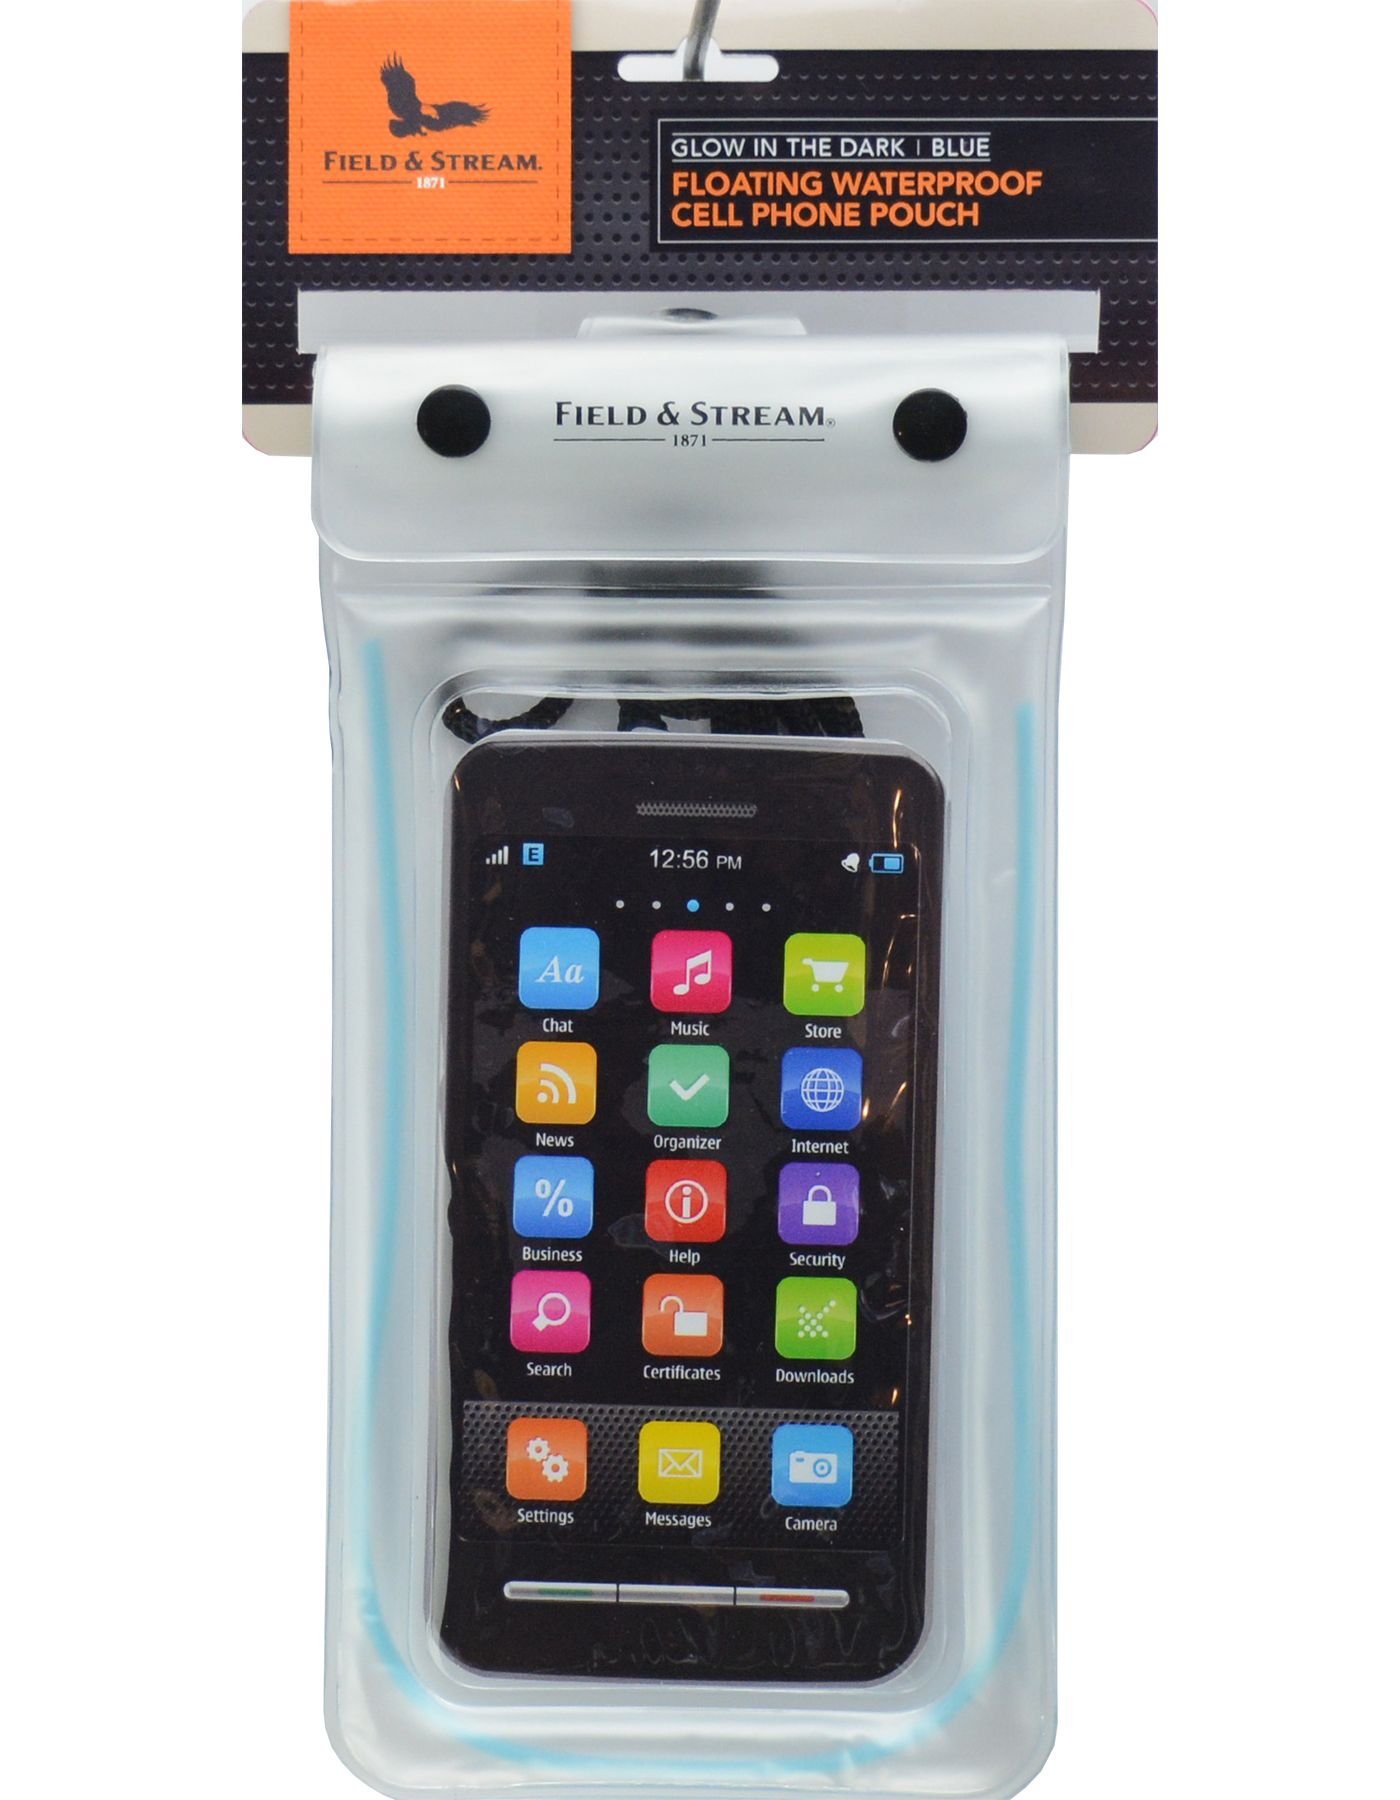 super popular 8d767 e5943 Field & Stream Floating Waterproof Cell Phone Pouch